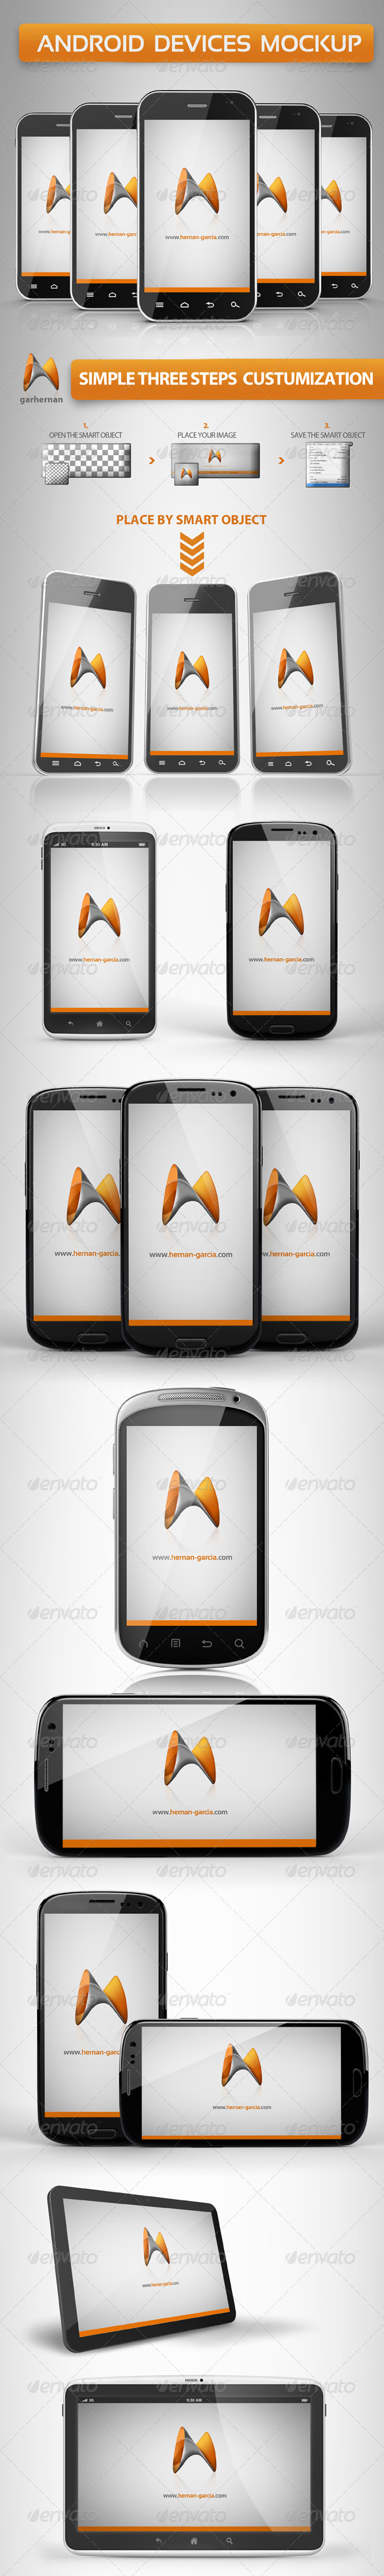 Android Devices Mockup - Mobile Displays